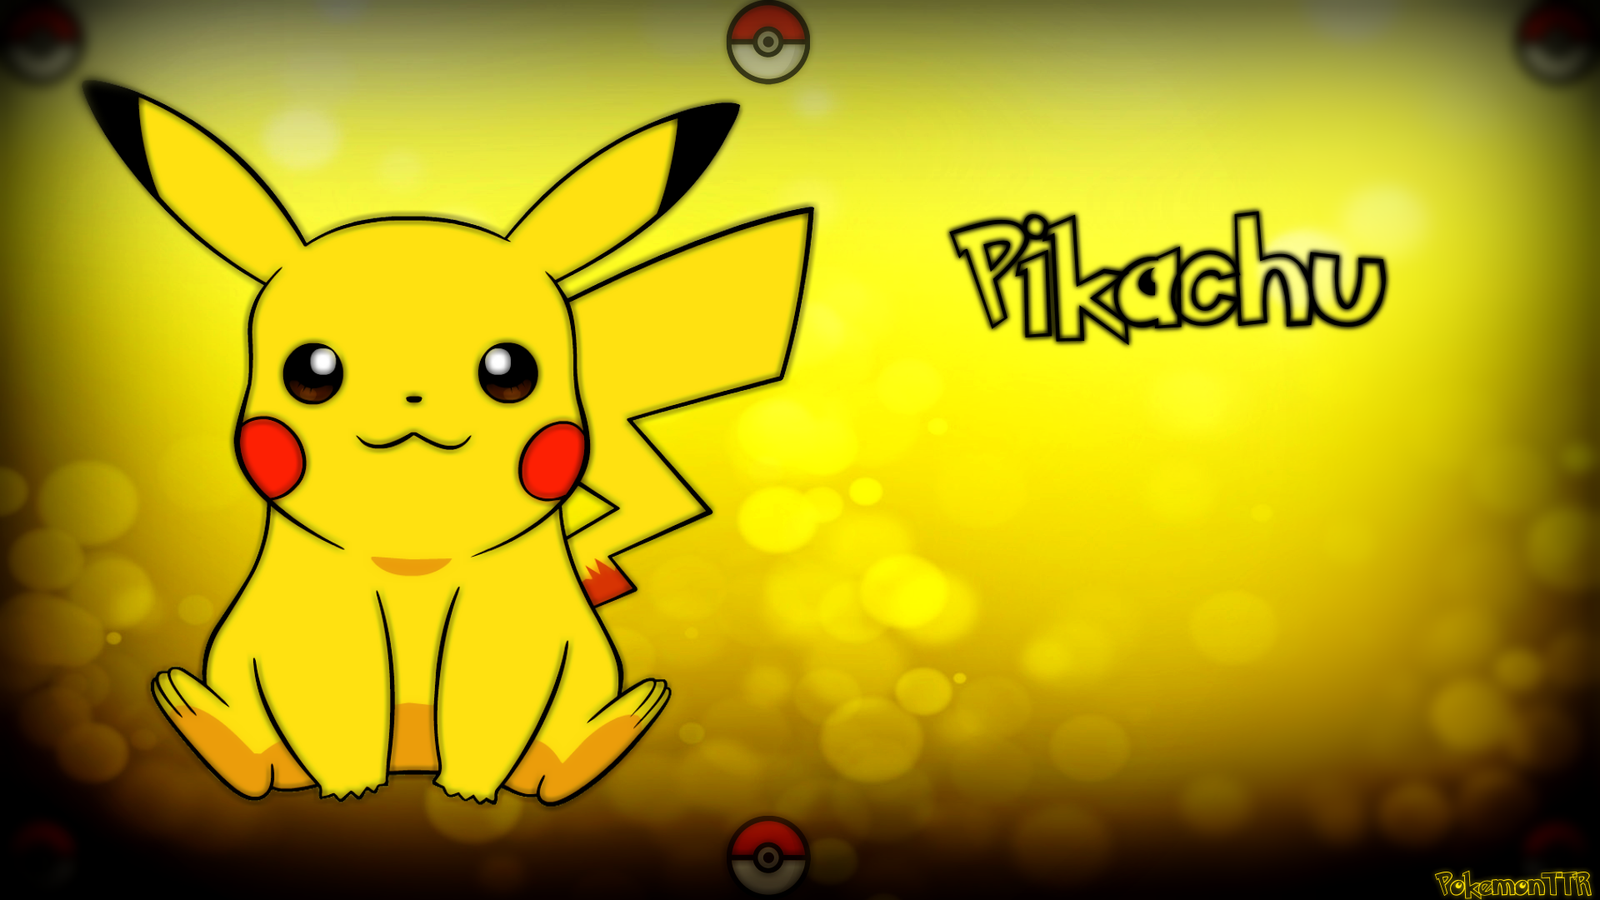 pikachu pokemon wallpaper - photo #26